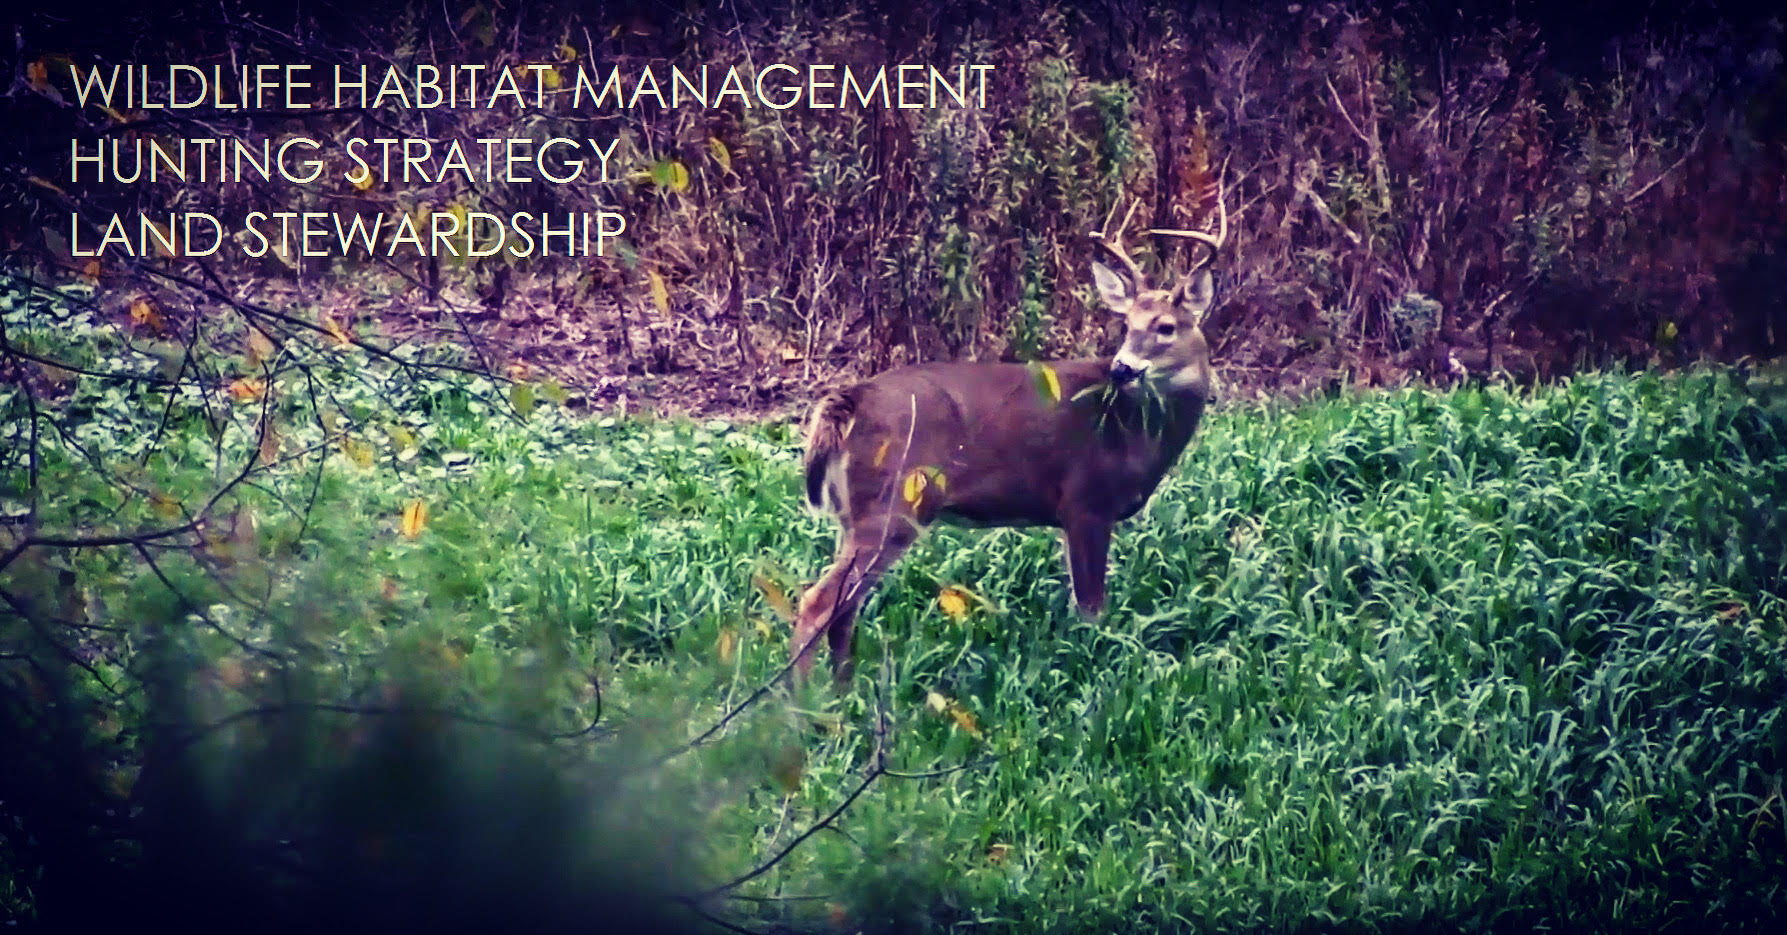 Habitat Podcast #58 - Arron, Jared & Brian - Last Minute Food Plots, How To Save Plots w/ Cereal Grains,  Hunting Waterways, Clover in Shade, Different Failed Scenarios, Backup Plans, Tips & Tricks & Fall Hunting Plans show art